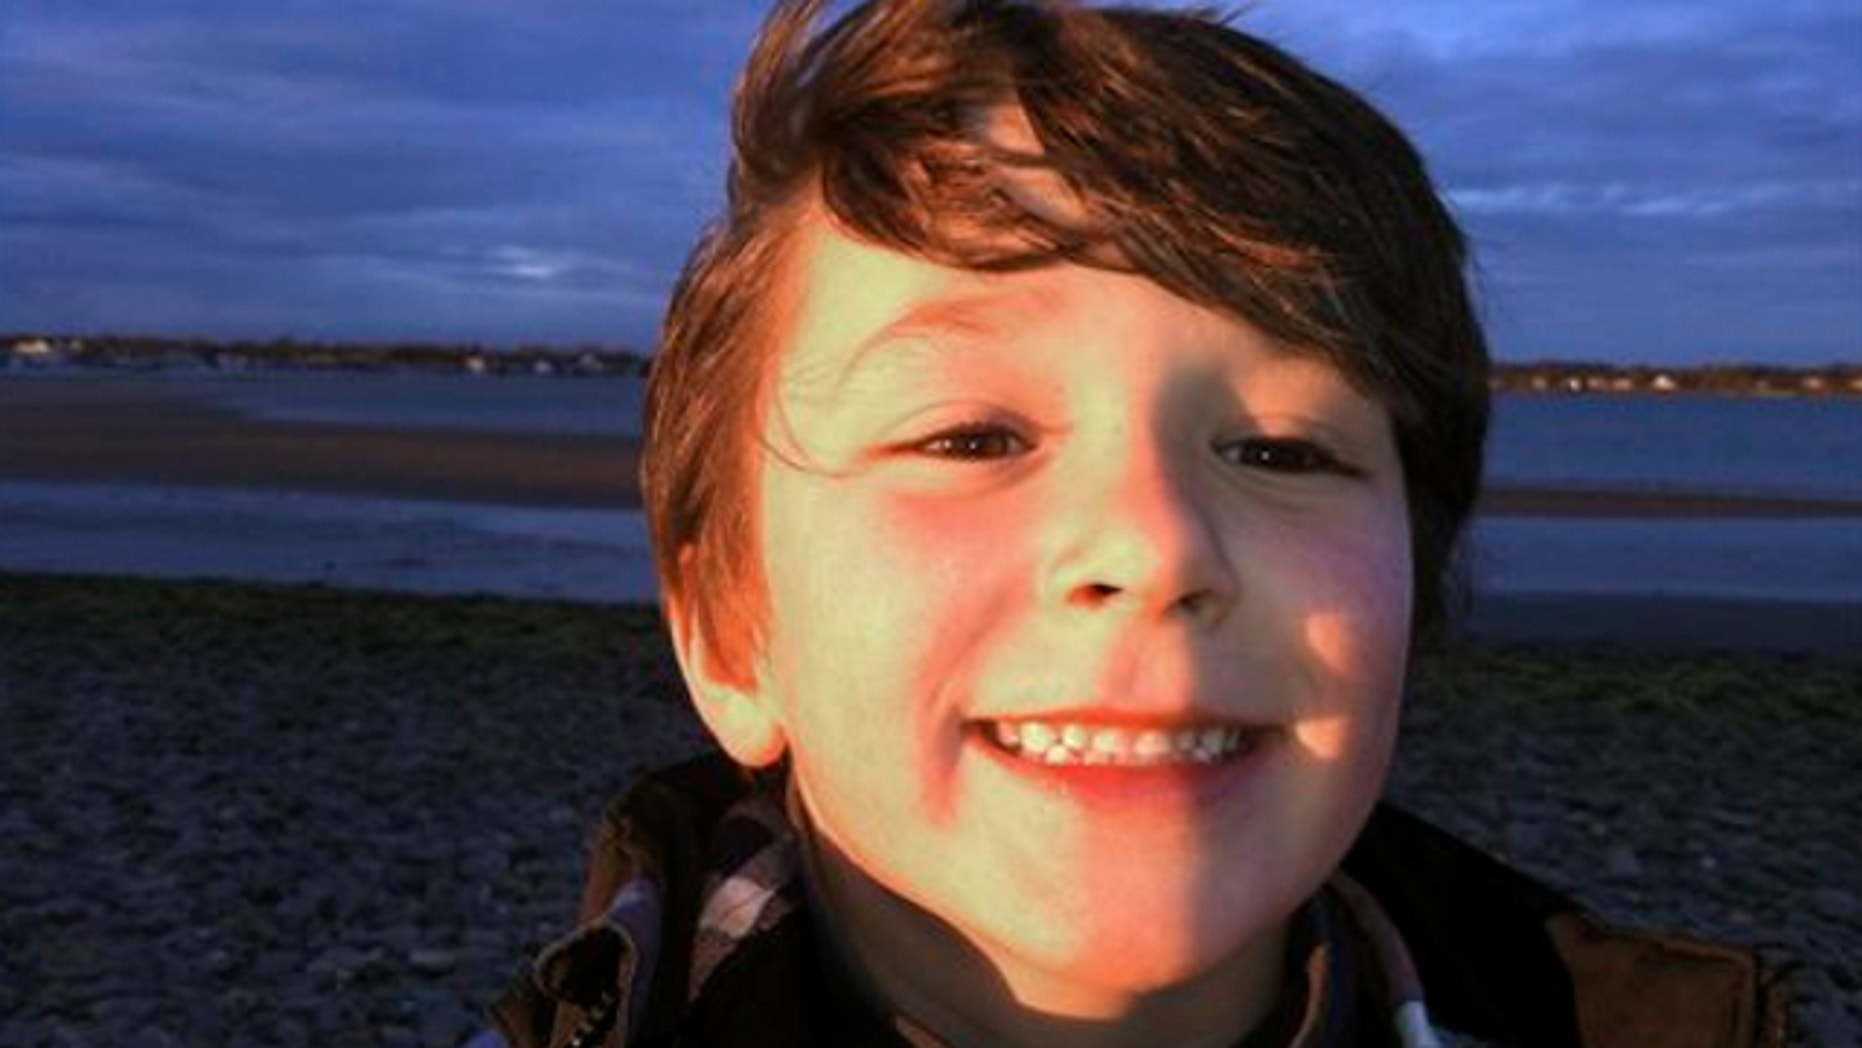 FILE: This autumn 2011 photo provided by the Jesse Lewis Choose Love Foundation shows Jesse Lewis, who was slain in the shooting at Sandy Hook Elementary School on Dec. 14, 2012, in Newtown, Conn.